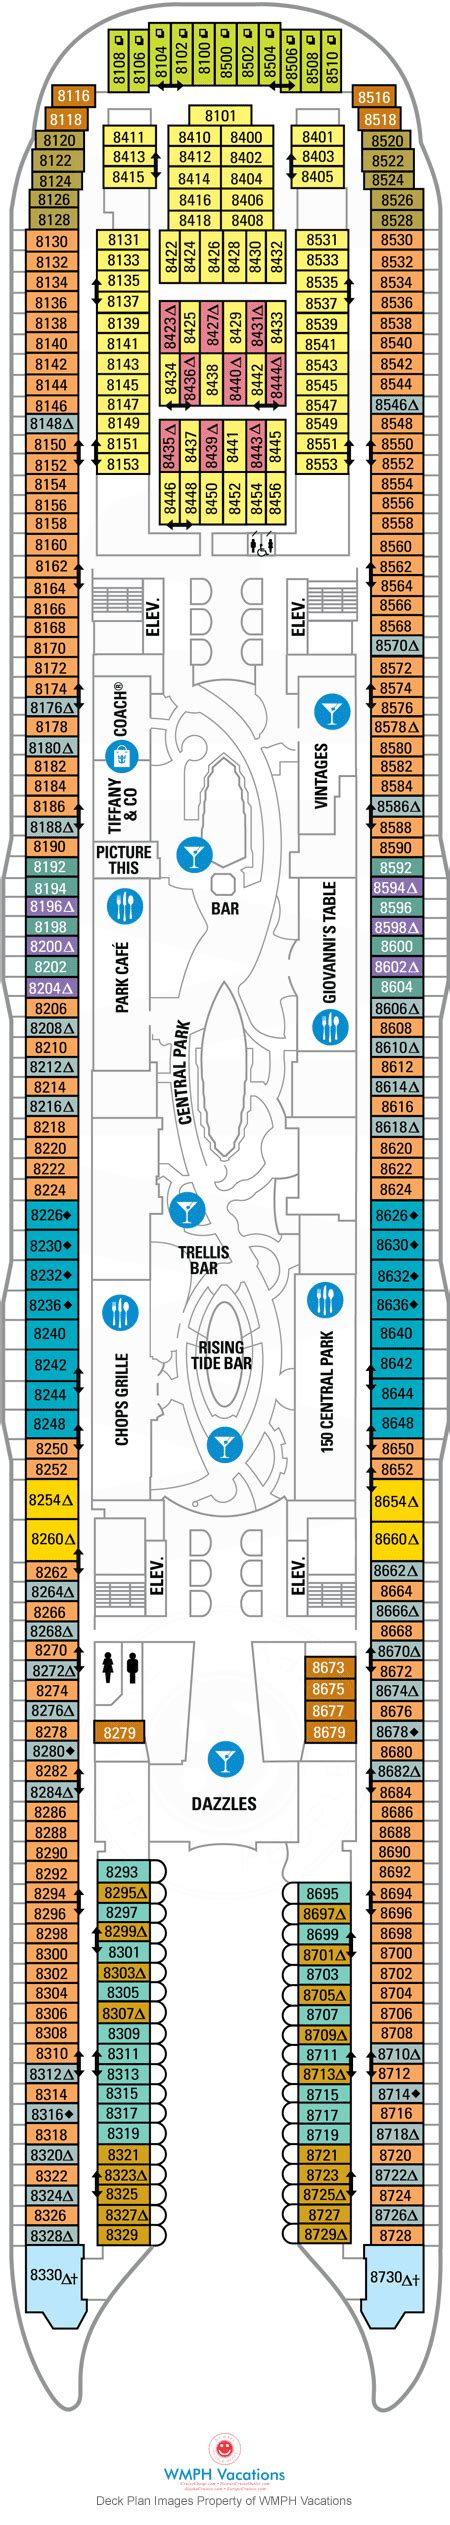 oasis of the seas floor plan oasis of the seas deck plans deck 8 what s on deck 8 on oasis of the seas cruisecheap com